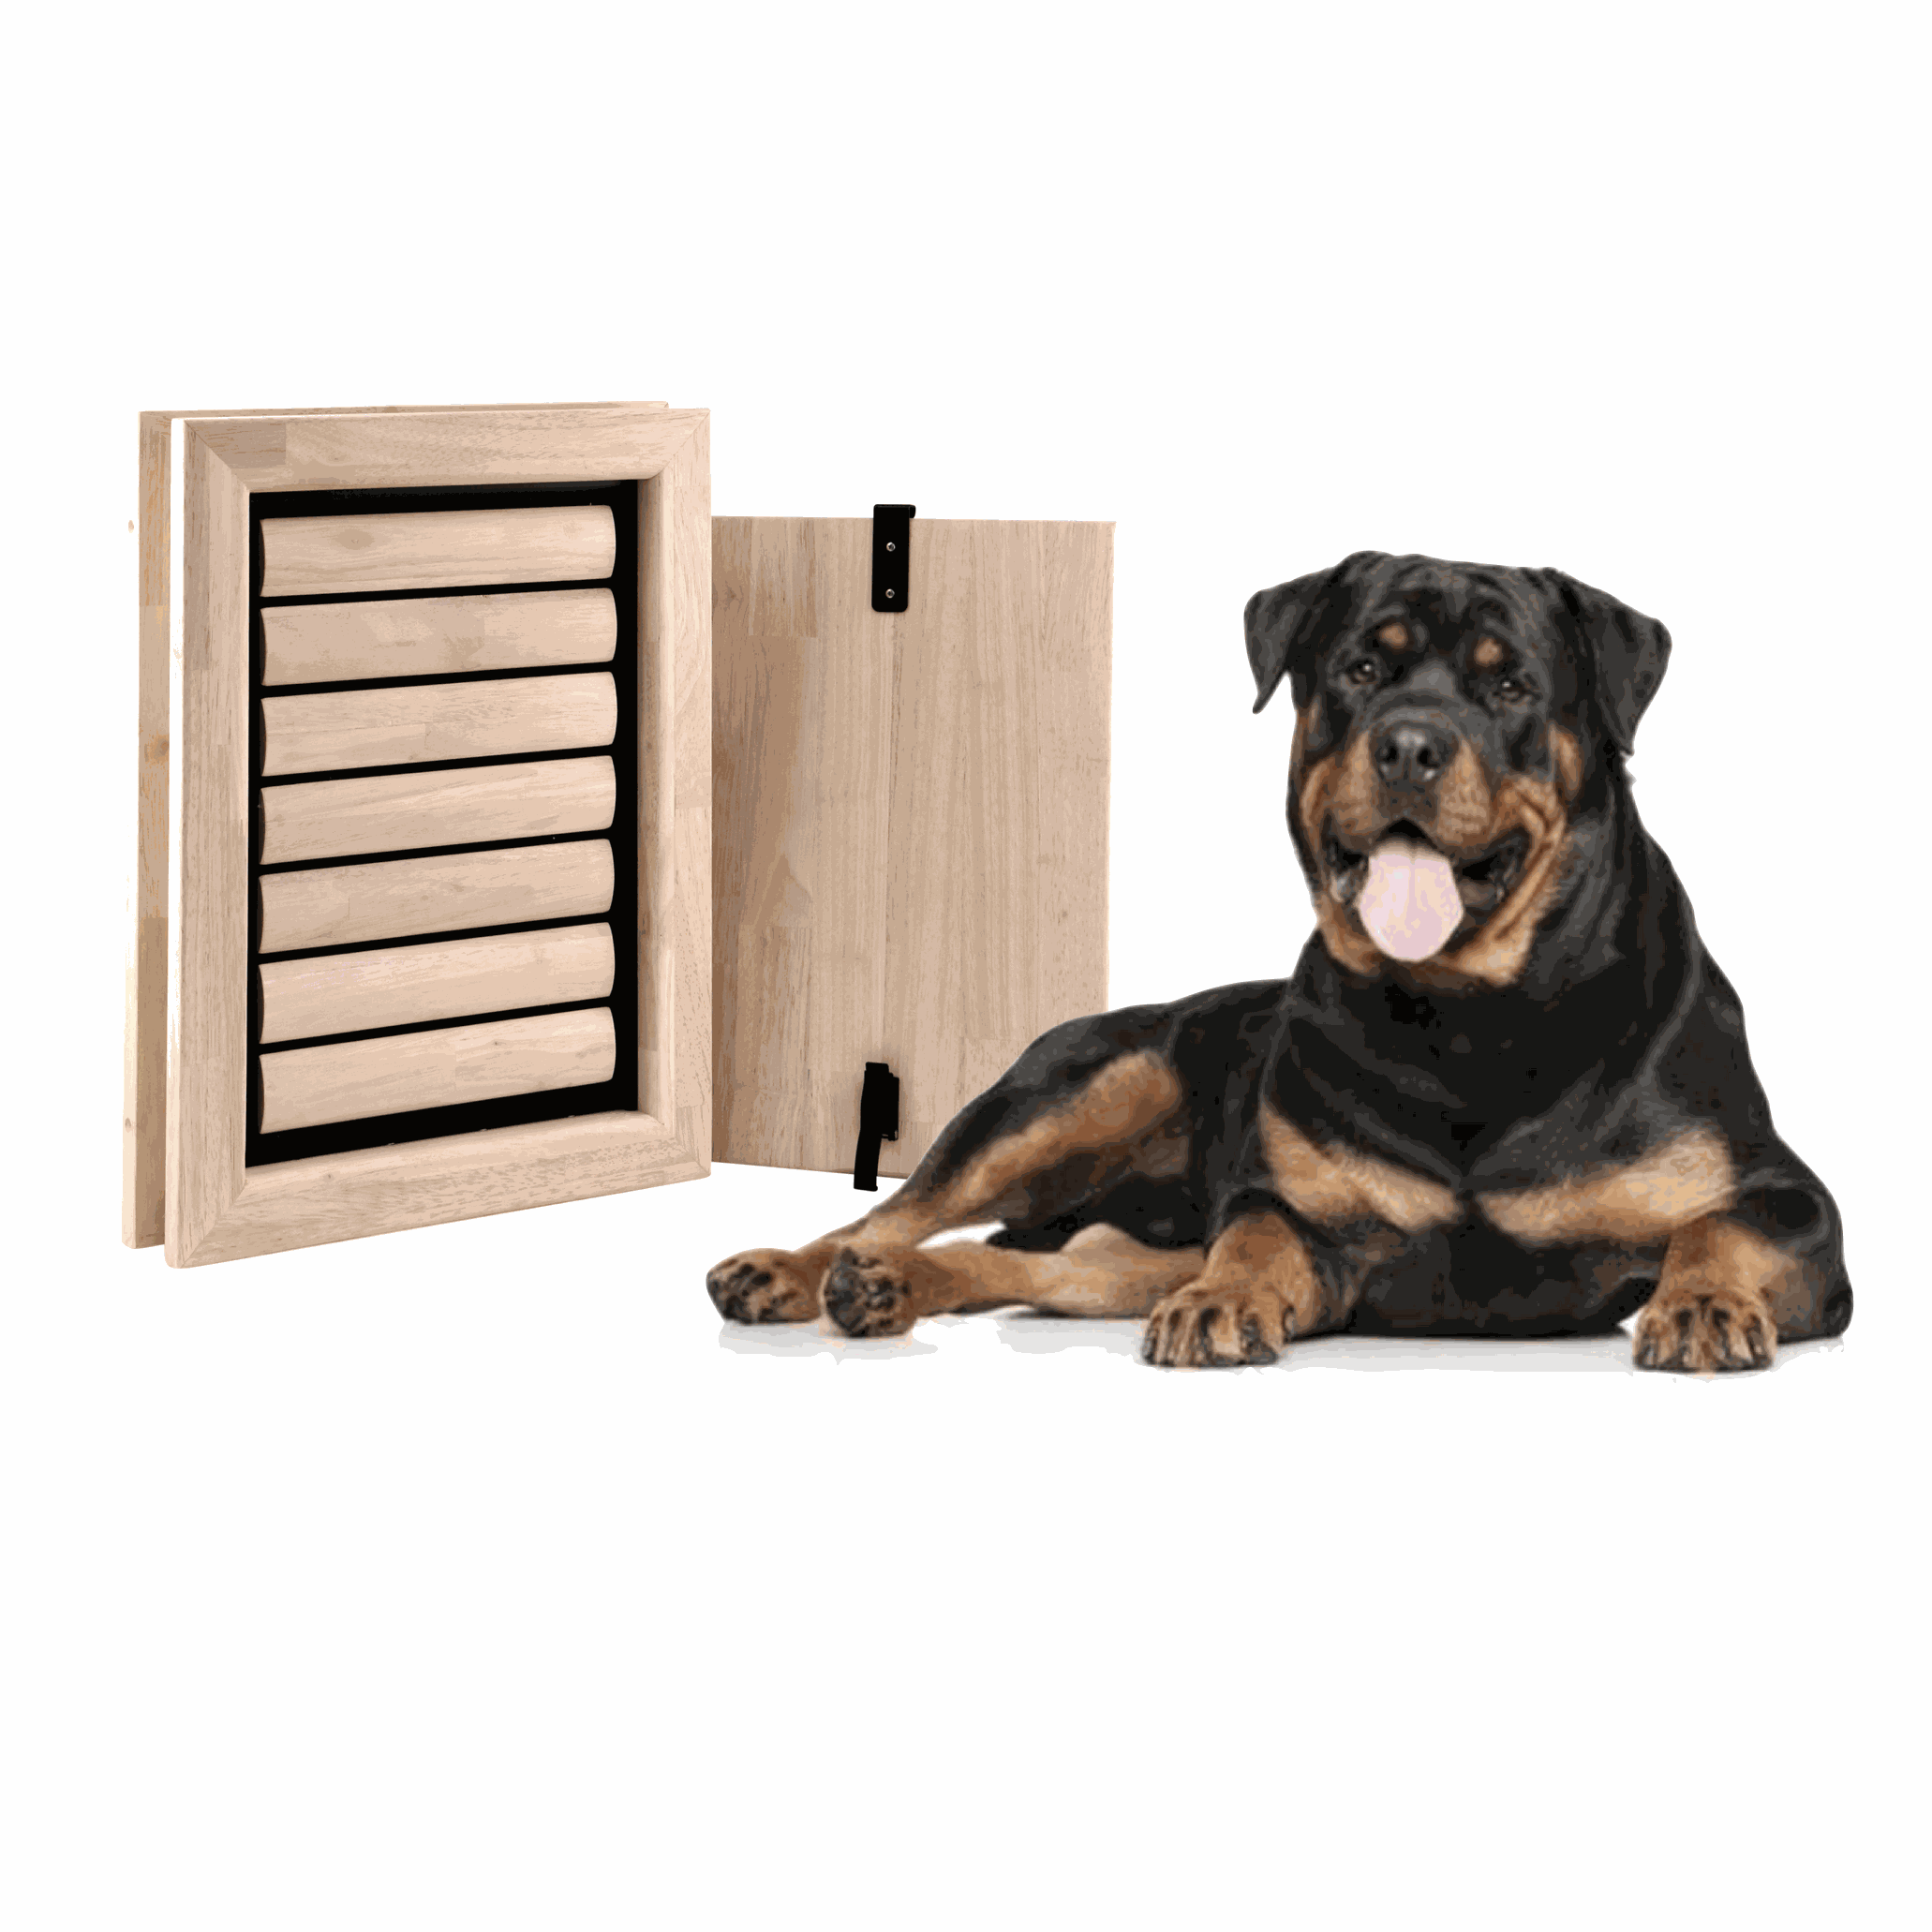 Dog Flap | Dog Door | Beethoven (Extra Large) dog door for very large dogs | fits in doors and walls | Bullmastiff, Dobberman, Bloodhound, Bernese Sennen, Cane Corso, Shepherd, Bordeaux Dog, Great Dane, Newfoundlander | © Tomsgates